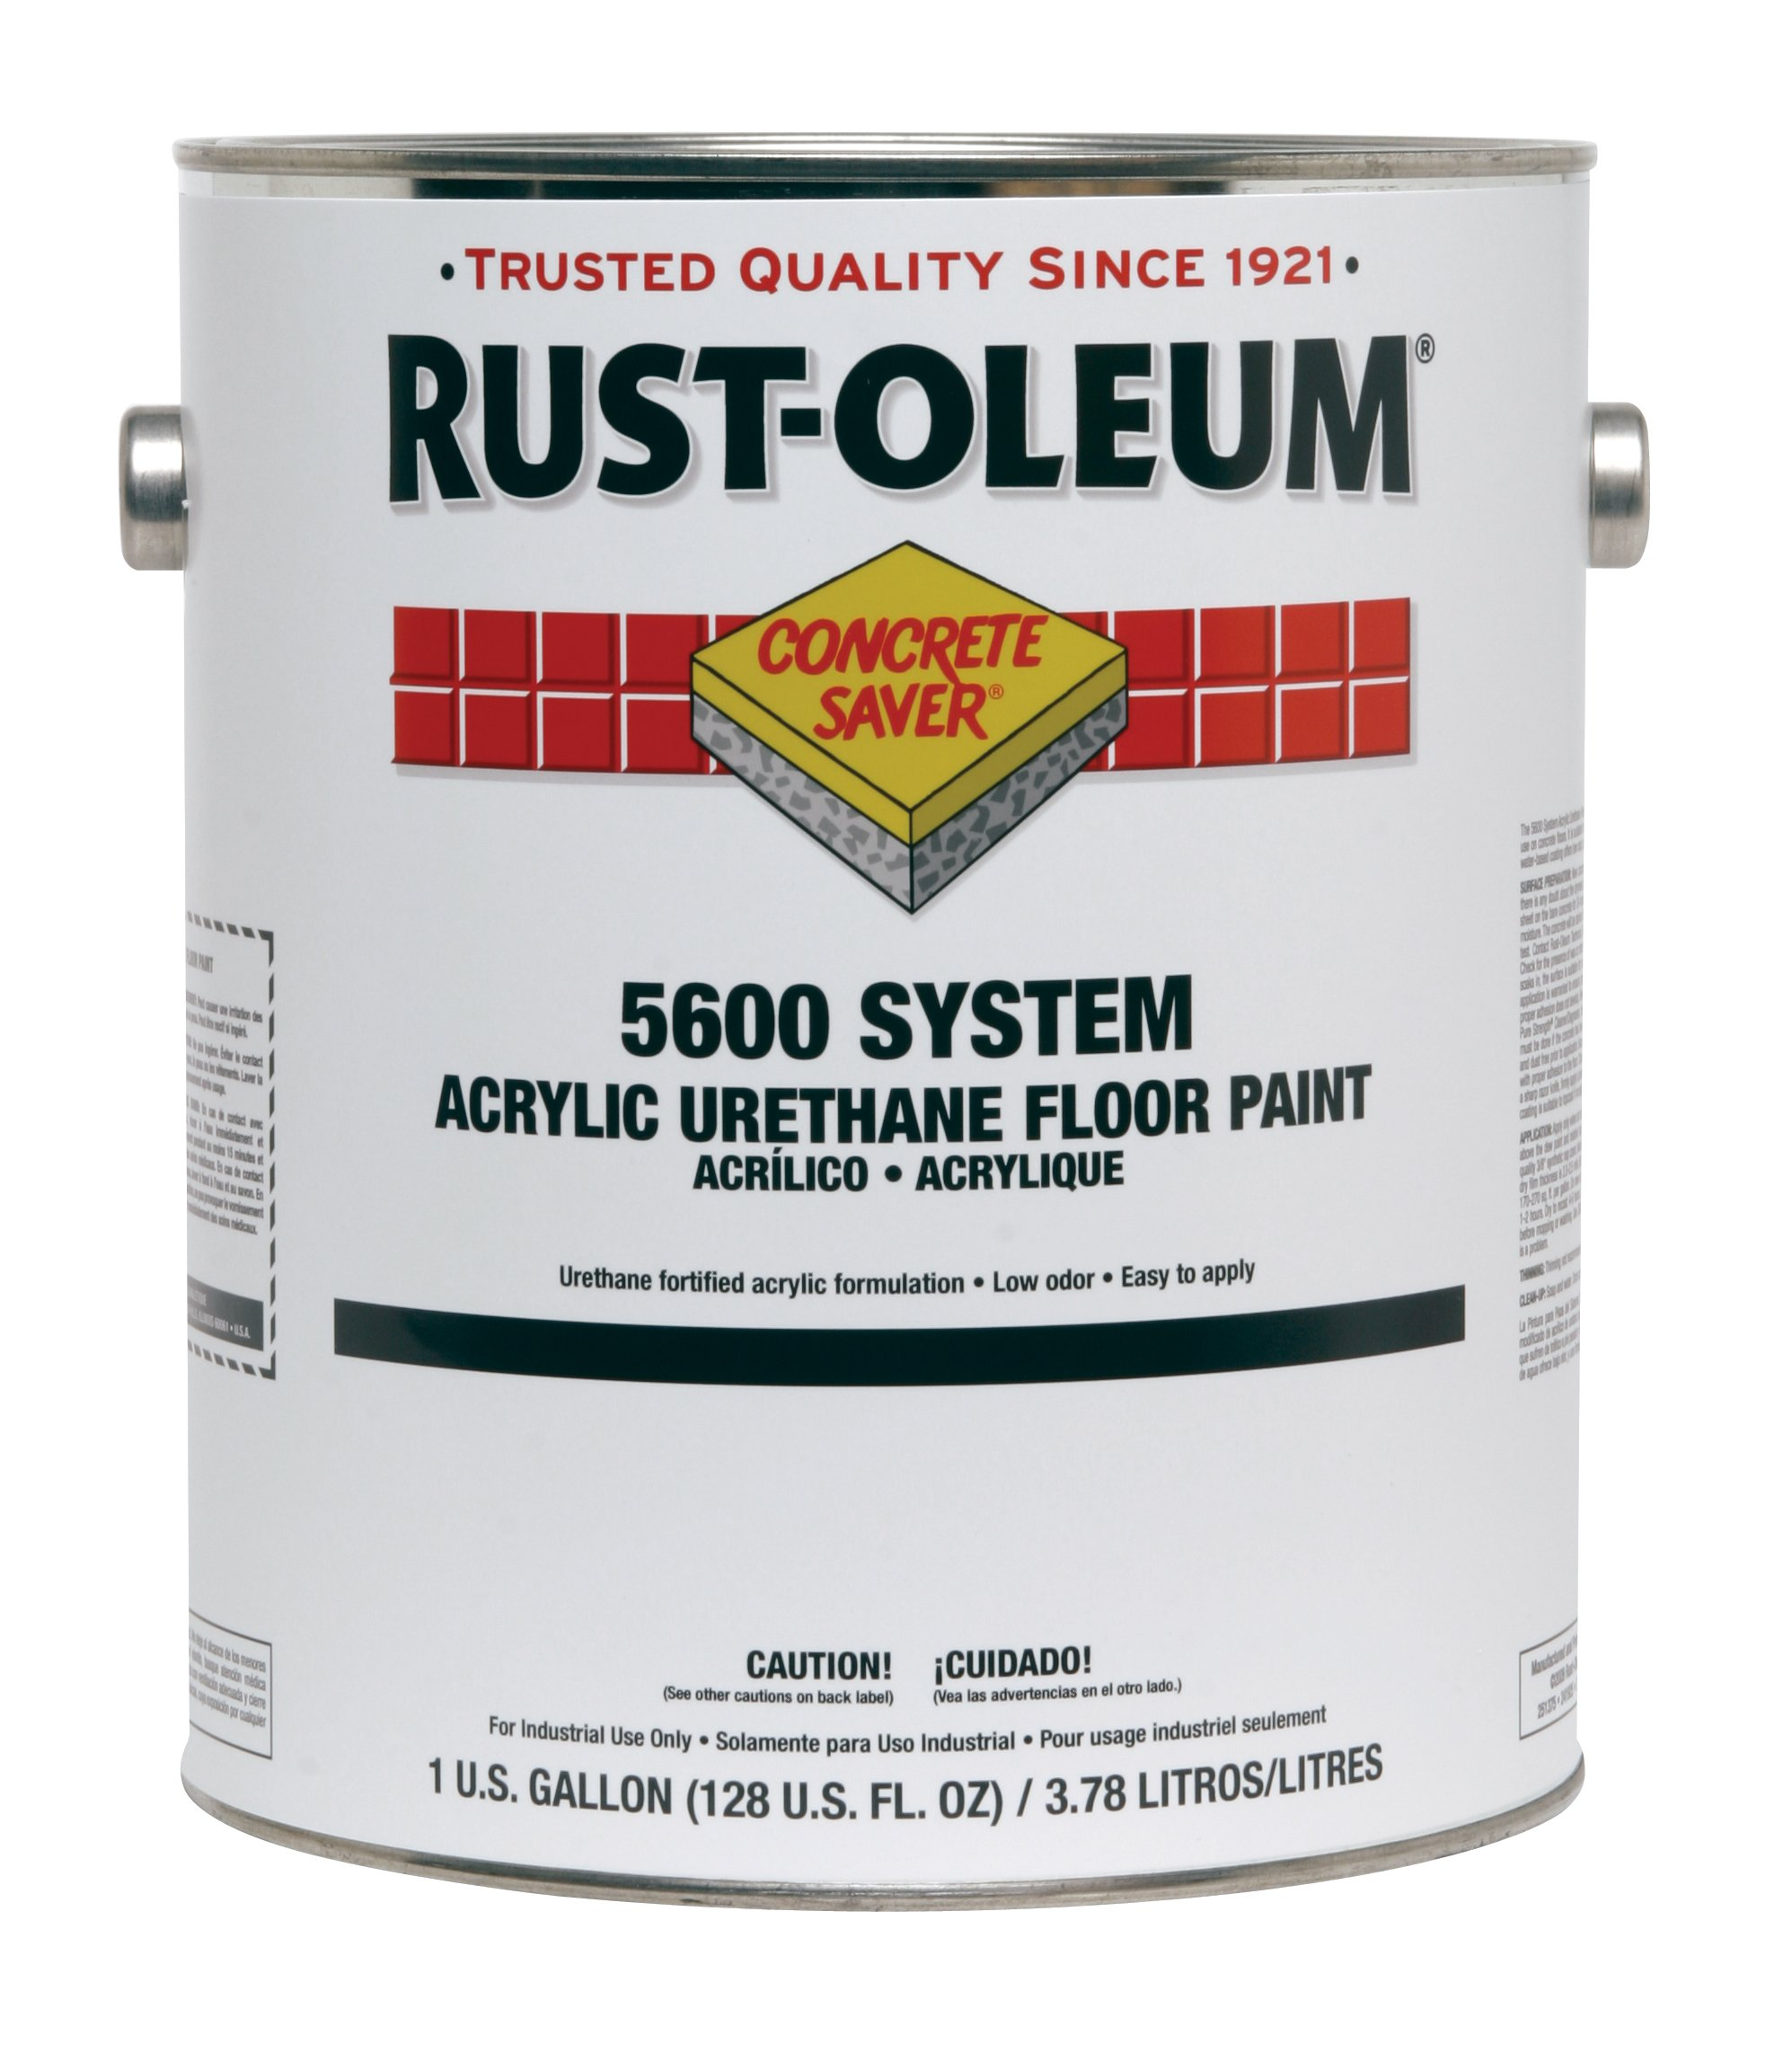 Rust-Oleum 251286 Concrete Saver 5600 System Acrylic Urethane Floor Paint, 1-Gallon, Safety Yellow, 2-Pack